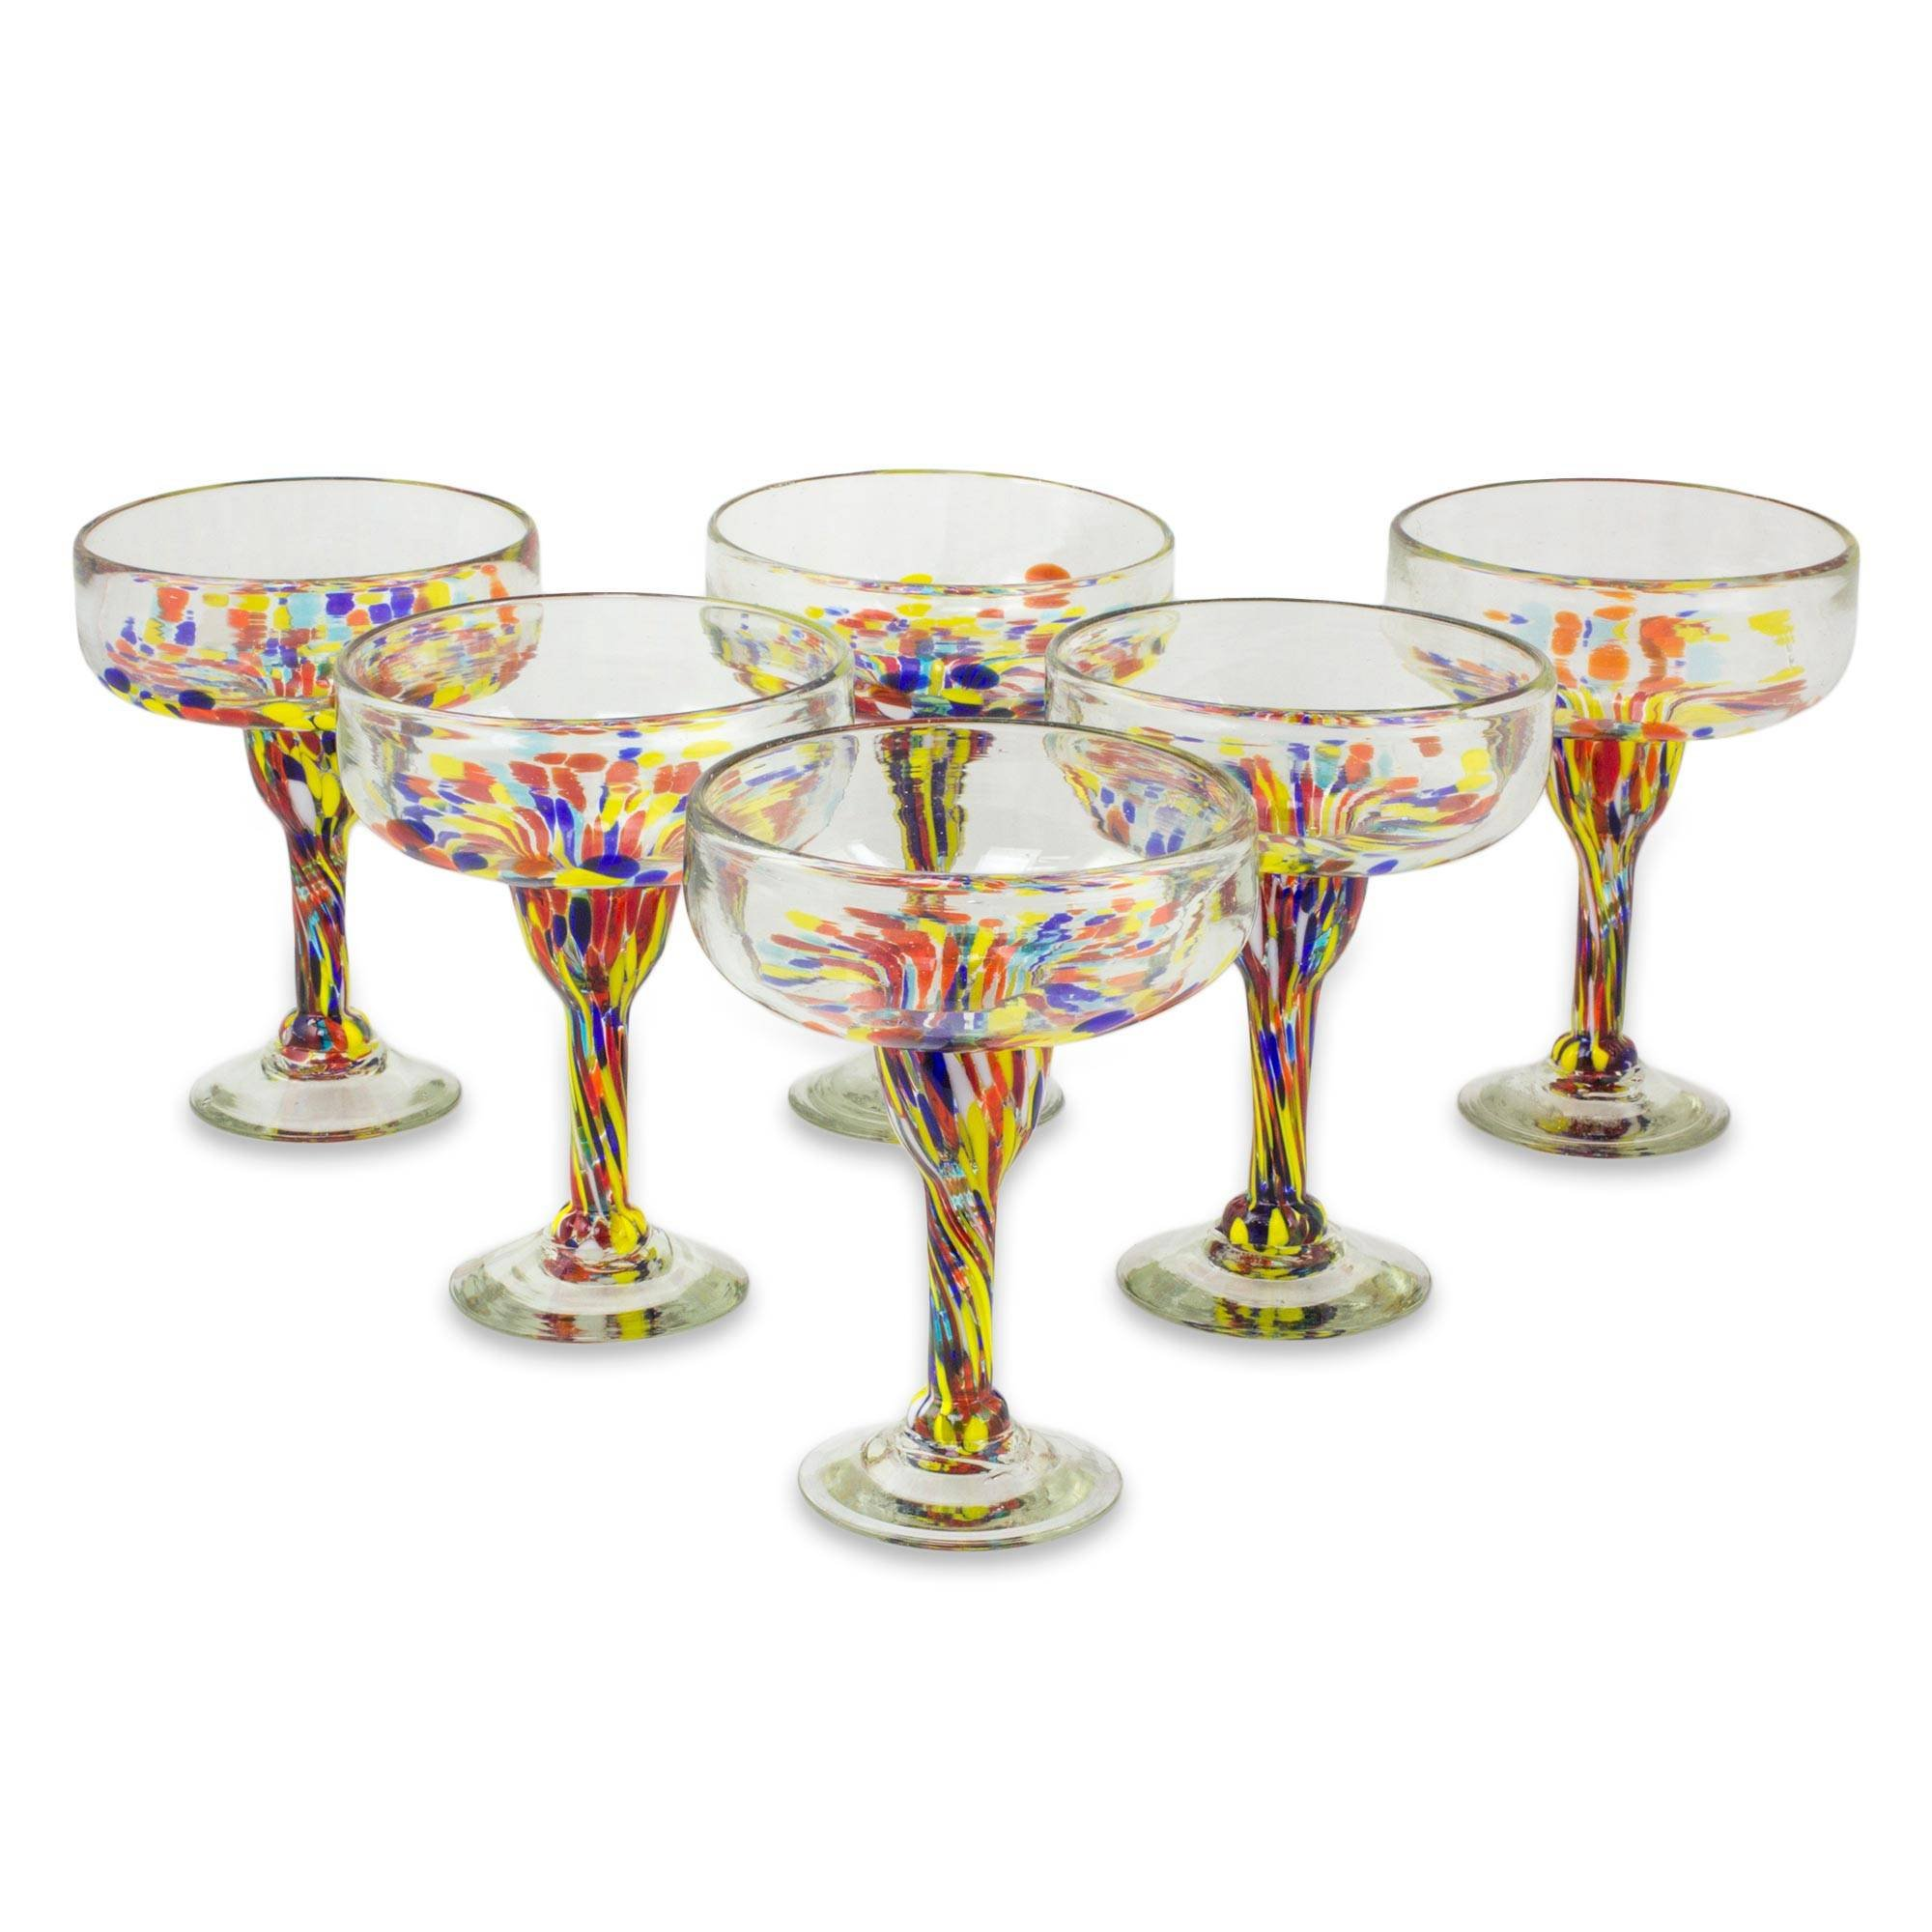 NOVICA Hand Blown Multicolor Eco-Friendly Glass Margarita Glasses, 13 oz. 'Confetti Festival' (set of 6)